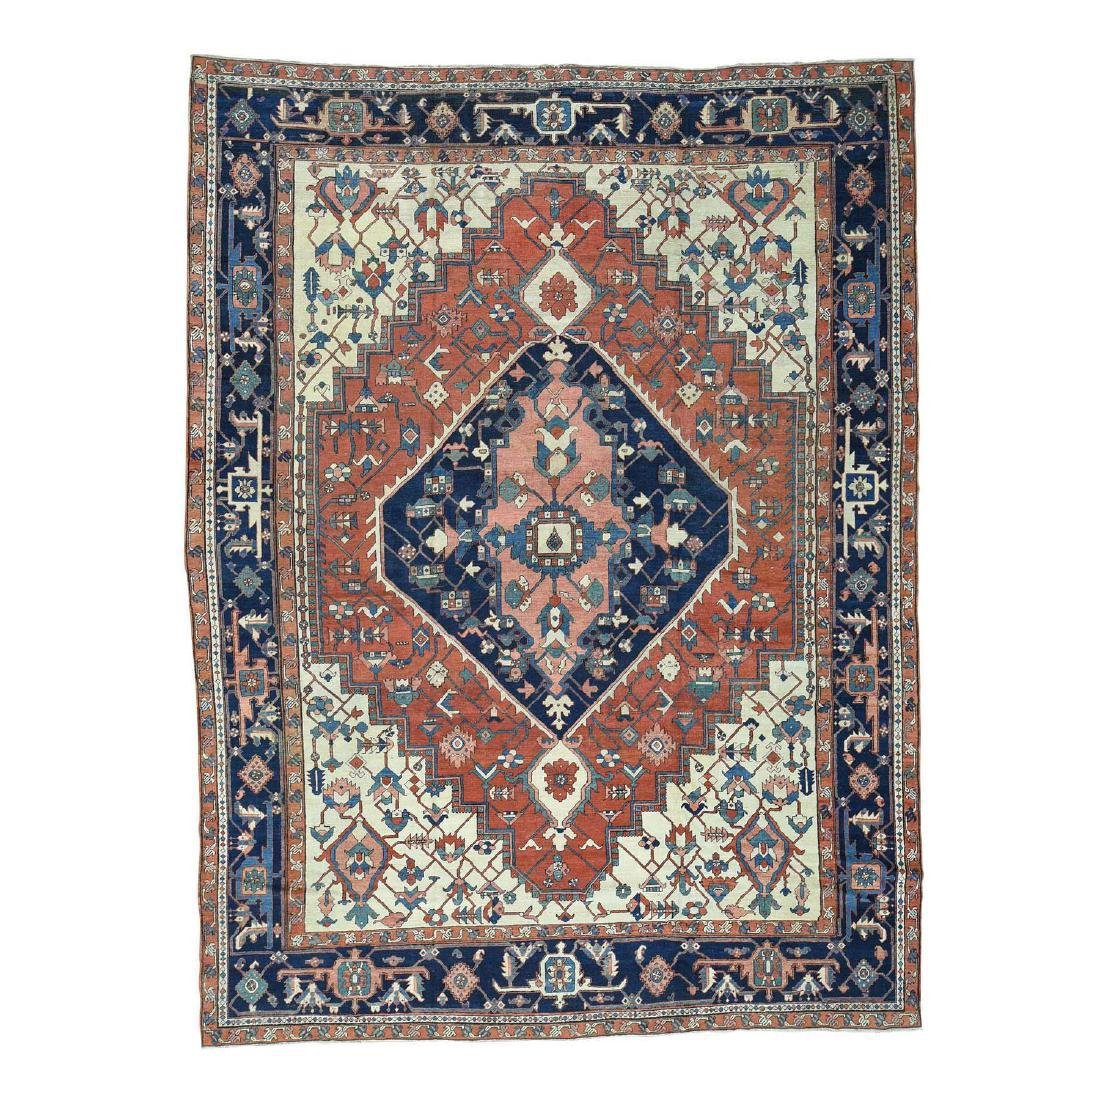 Antique Persian Serapi Hand-Knotted Rug 9.10x13.5